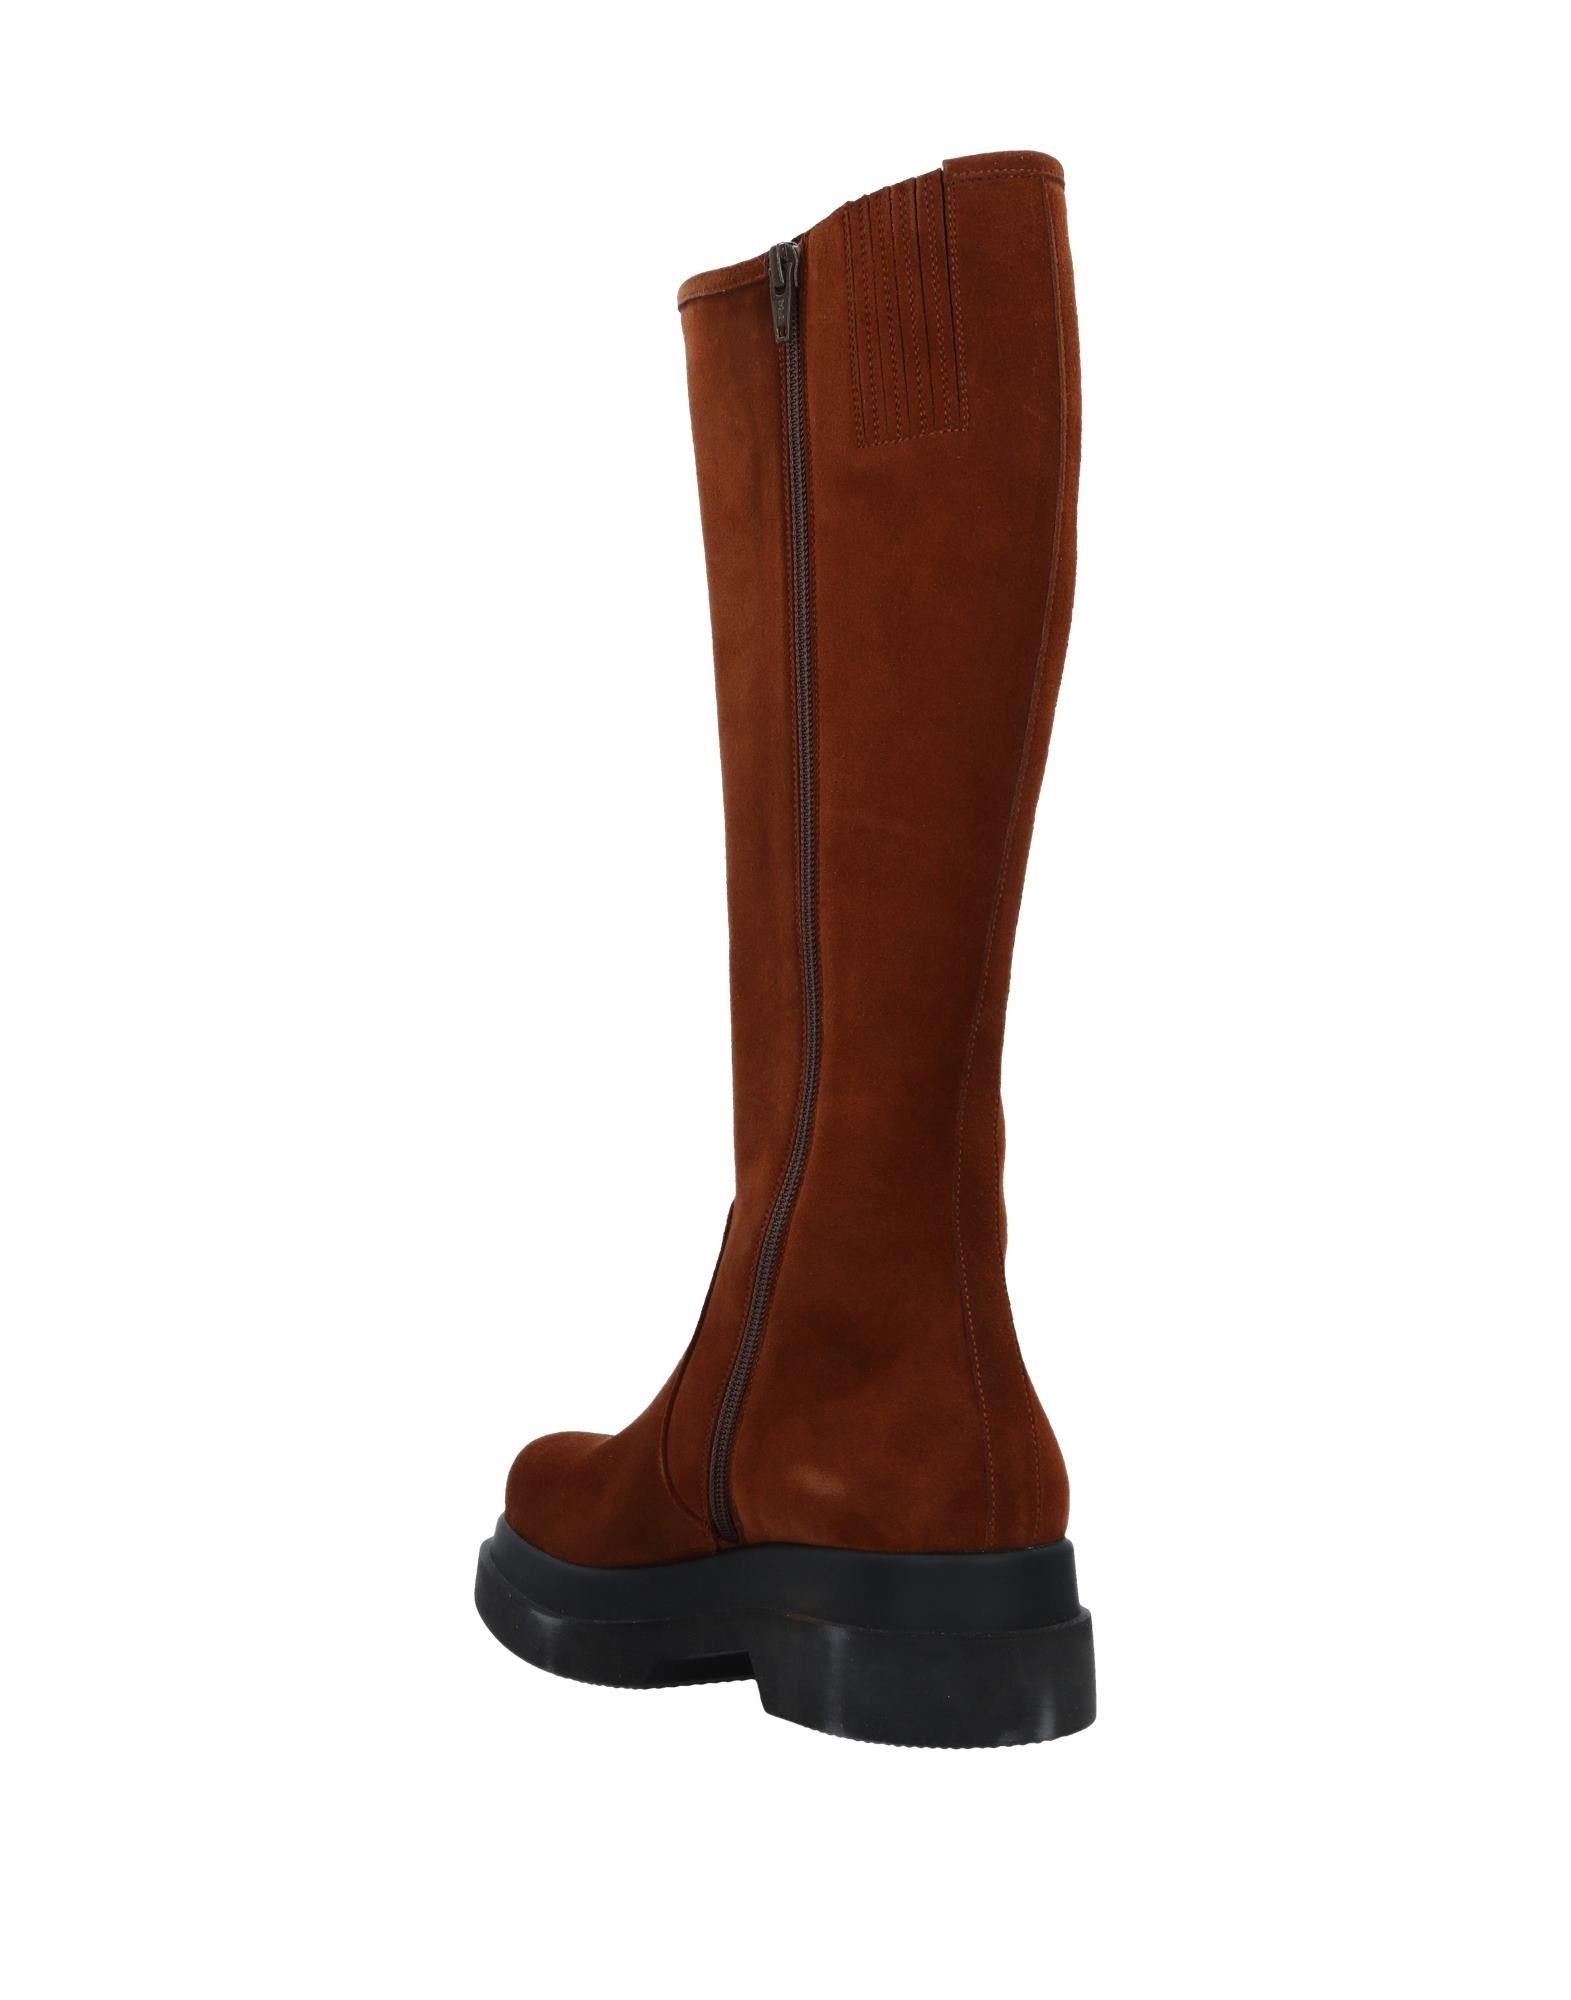 Norma Norma J.Baker Boots - Women Norma Norma J.Baker Boots online on  United Kingdom - 11516338VC e9ba94